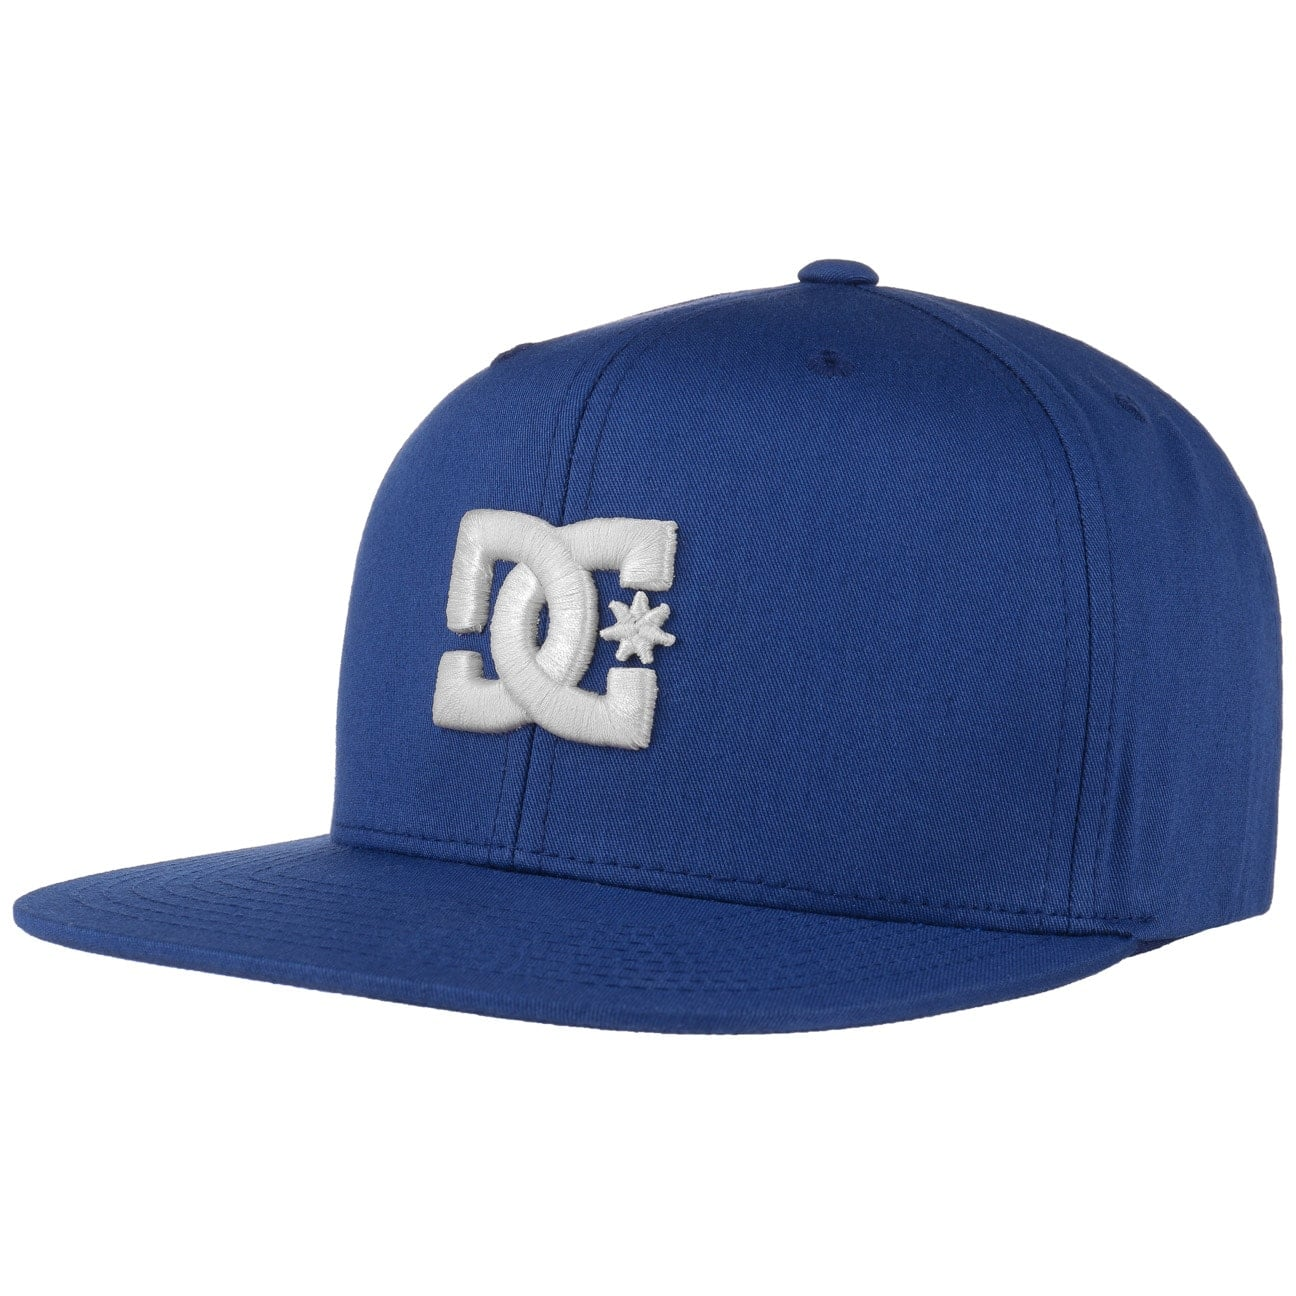 Gorra Snapback Snappy by DC Shoes Co